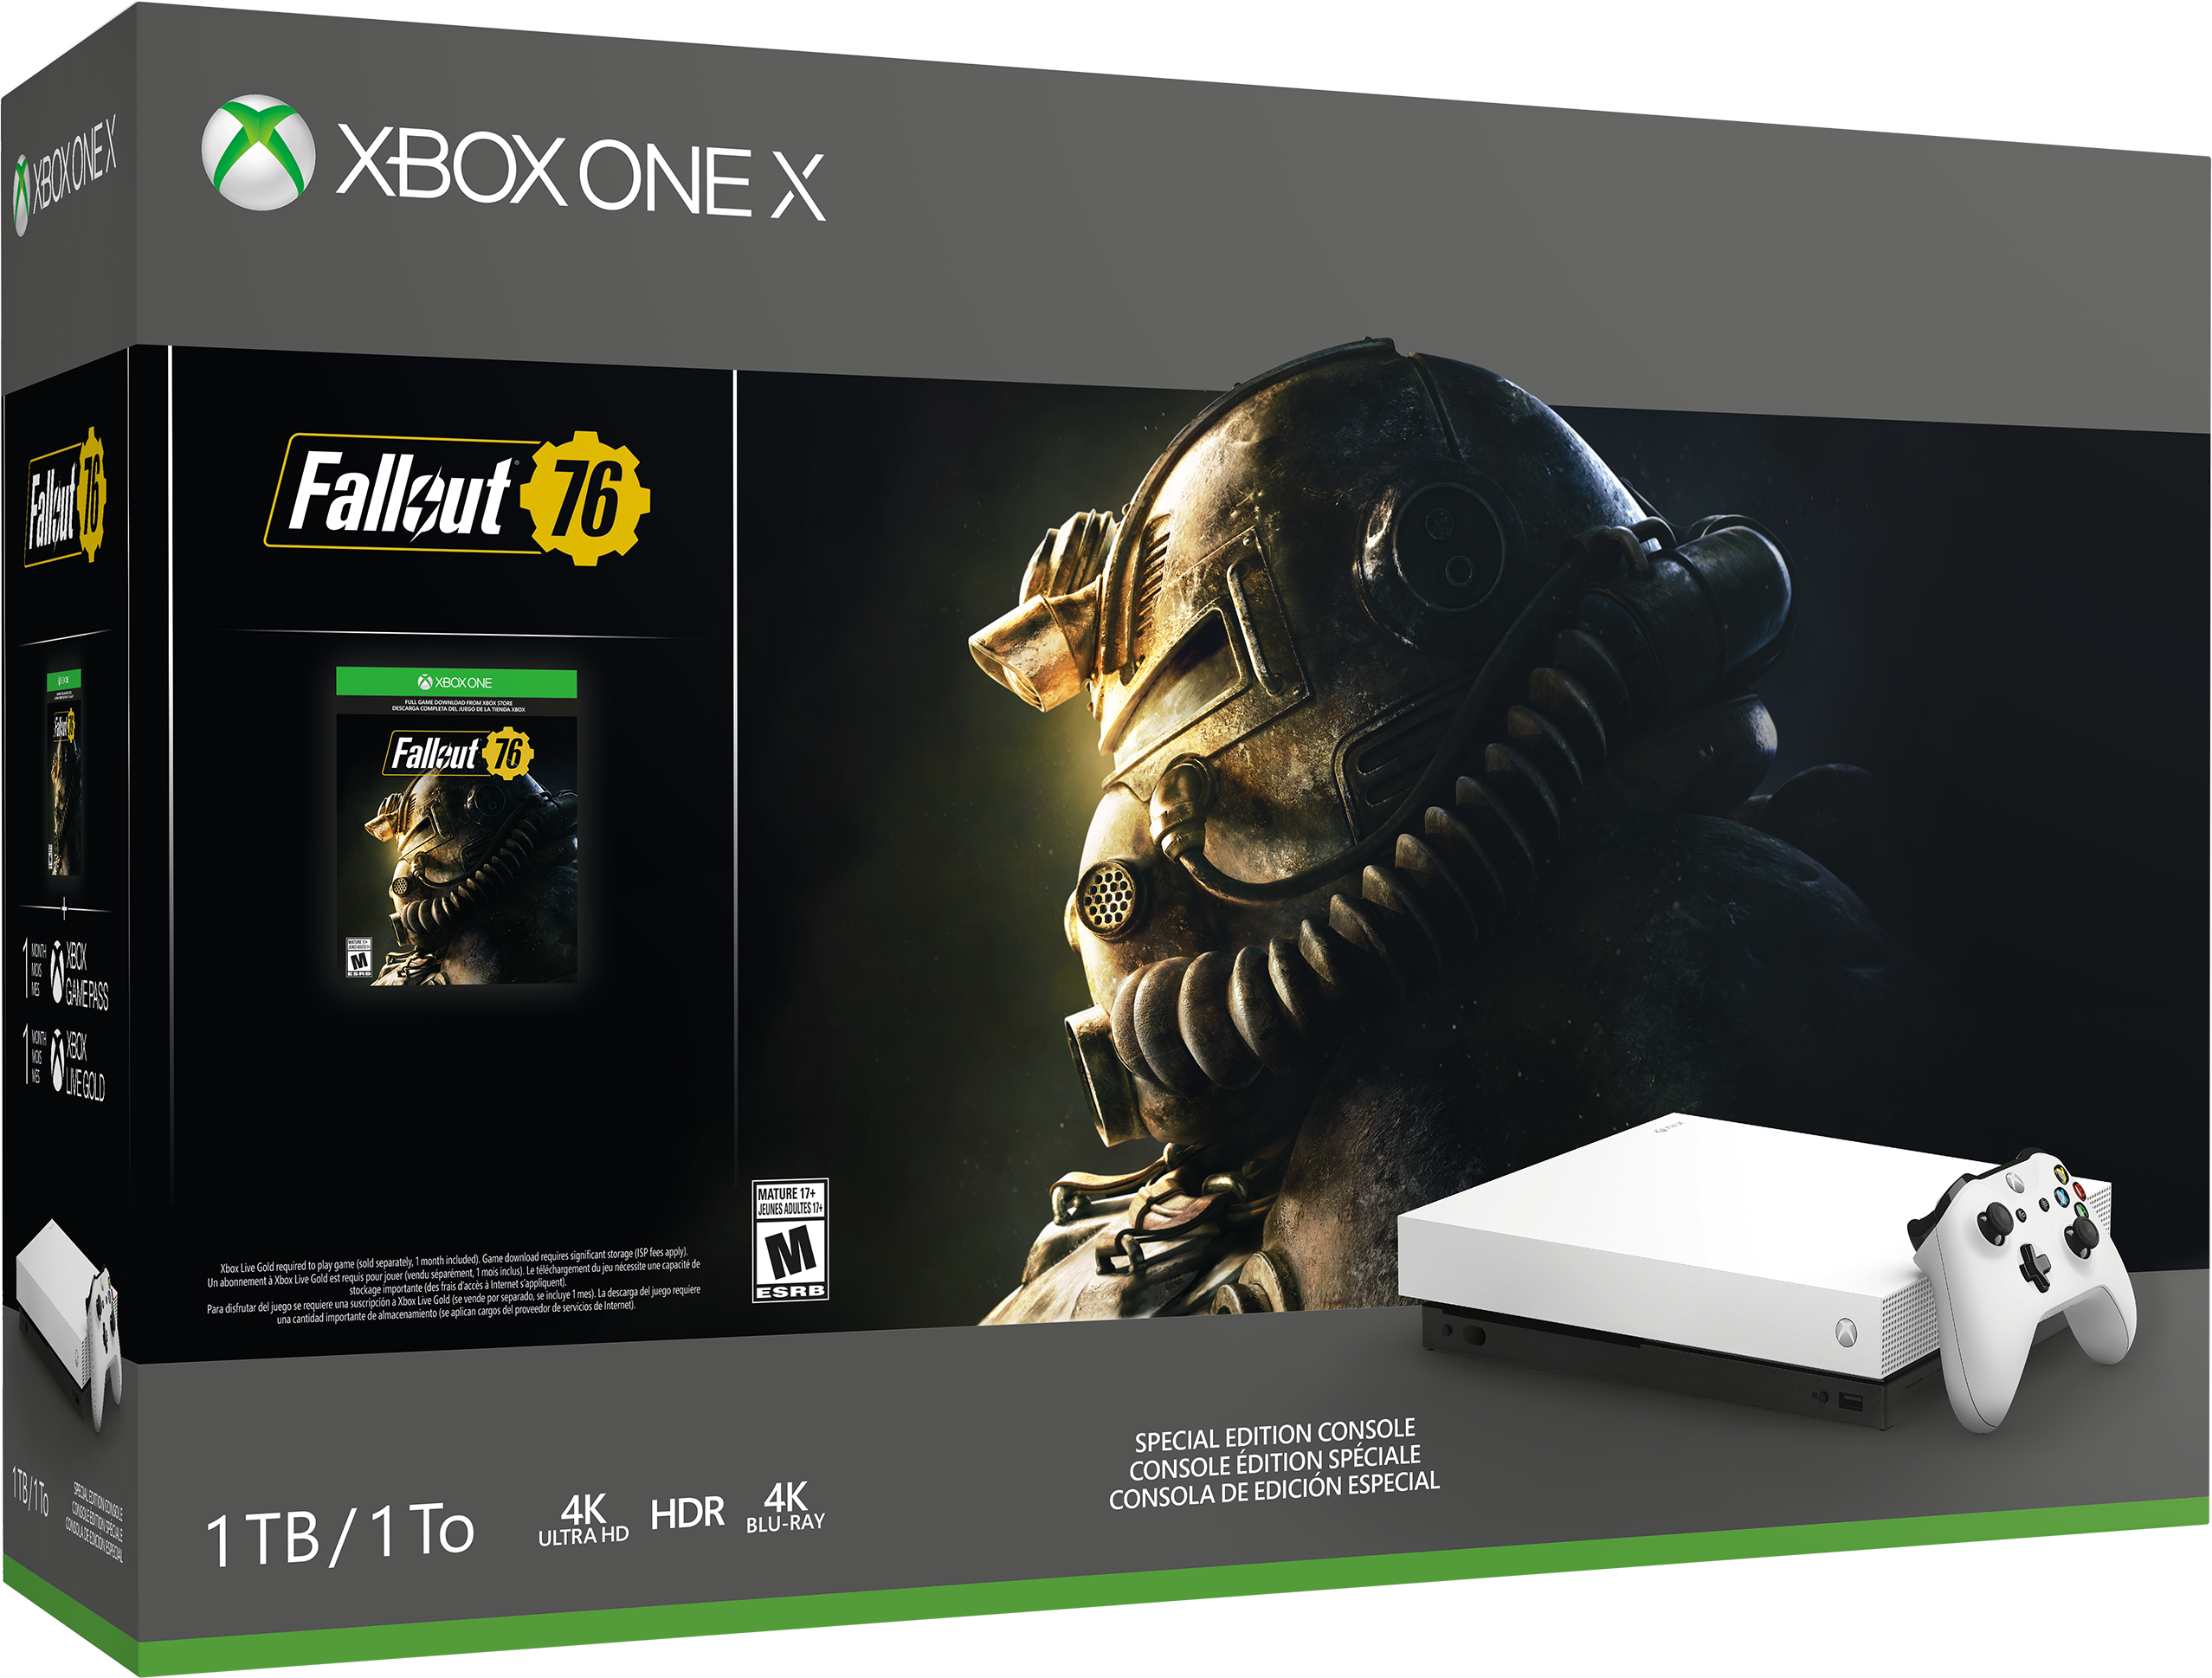 Xbox One X Robot White Fallout 76 bundles with box art